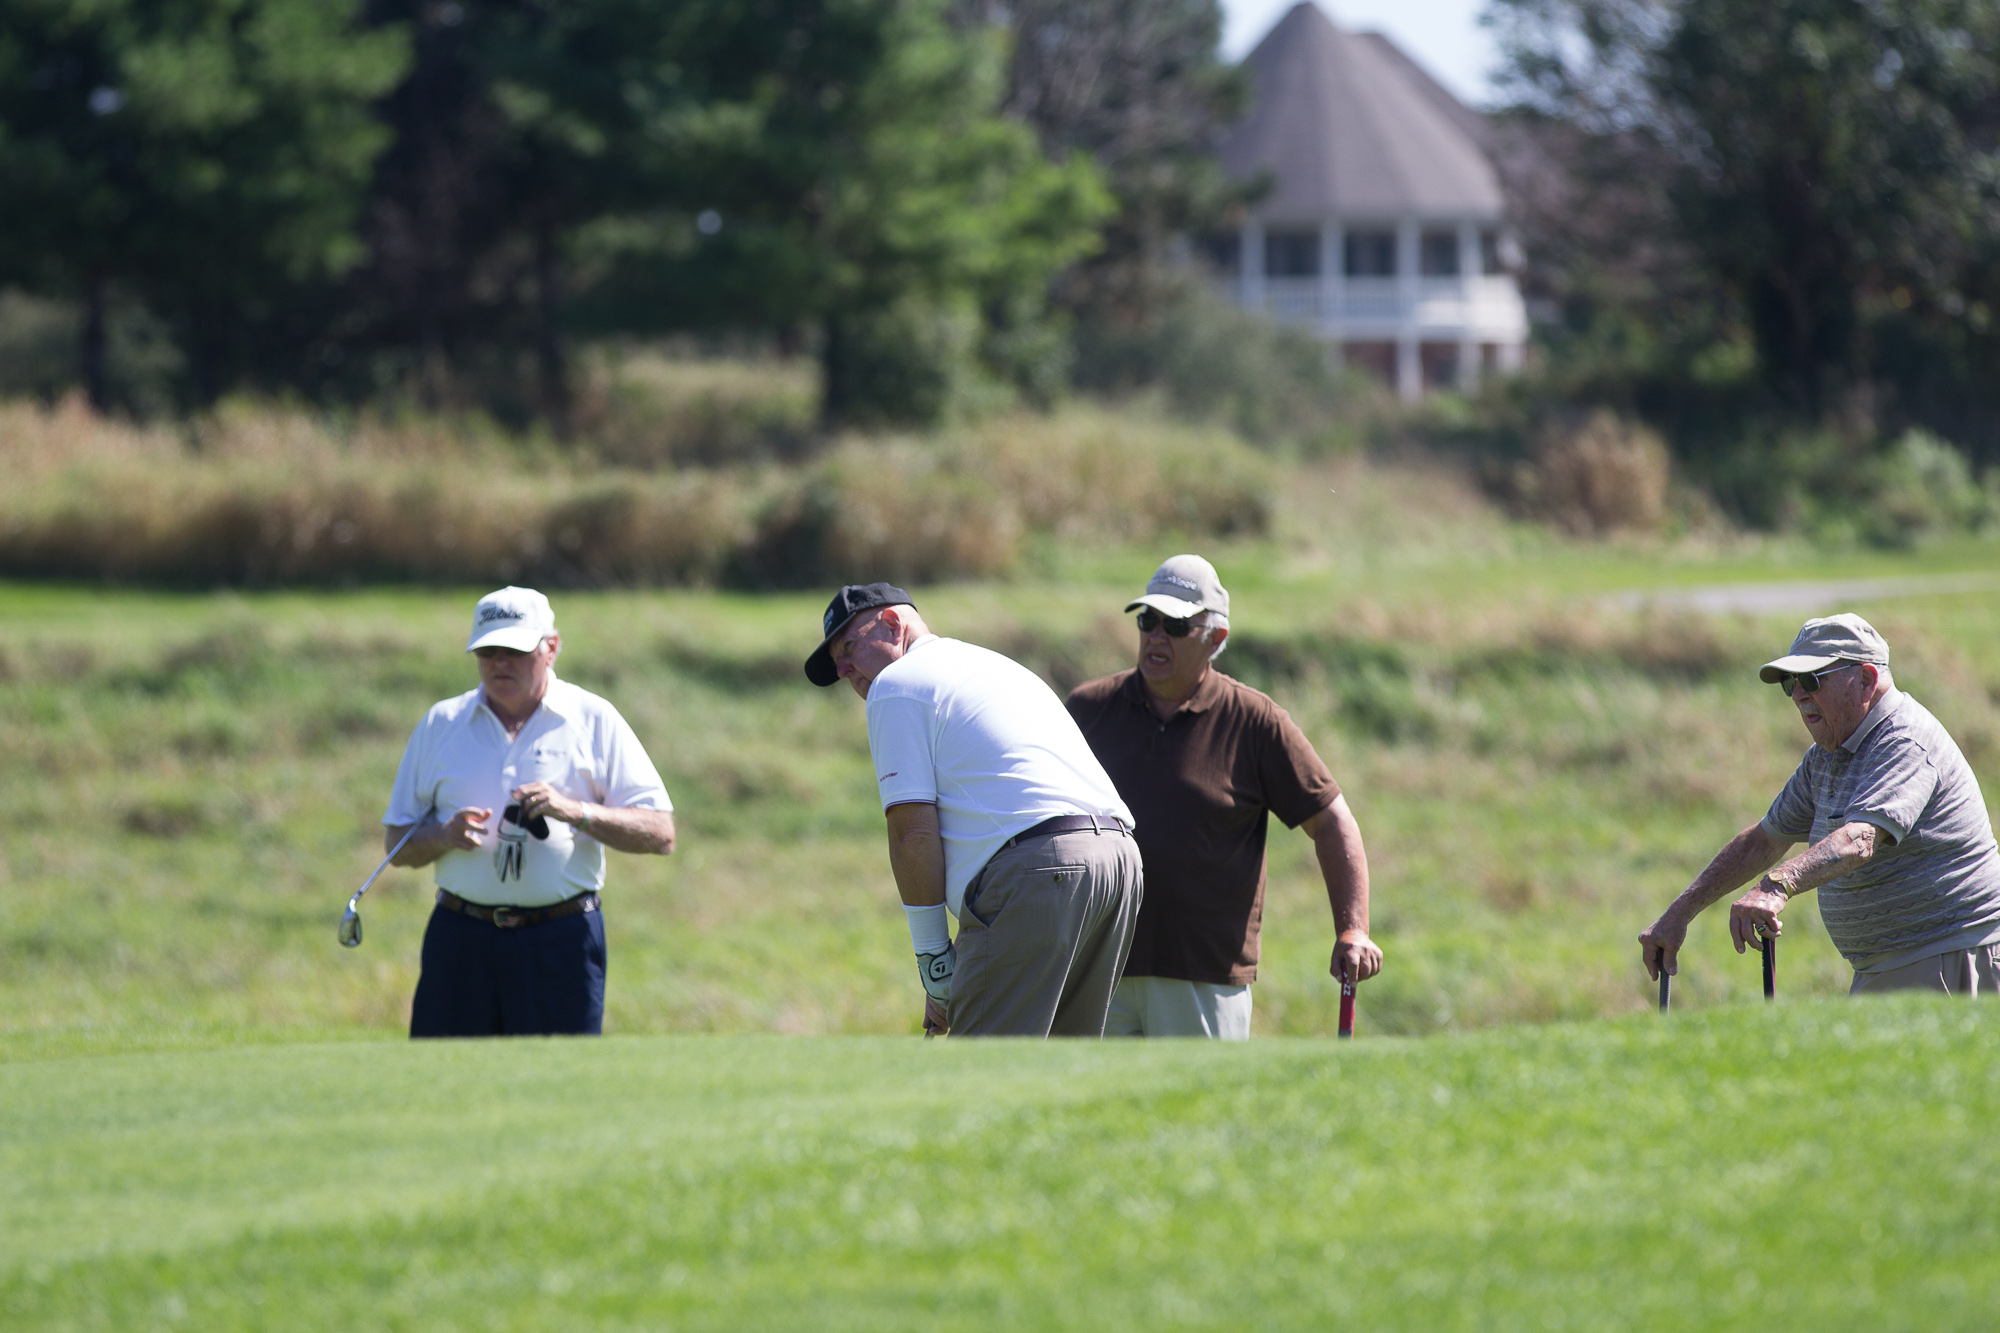 shrine of christs passion golf outing 2015 55